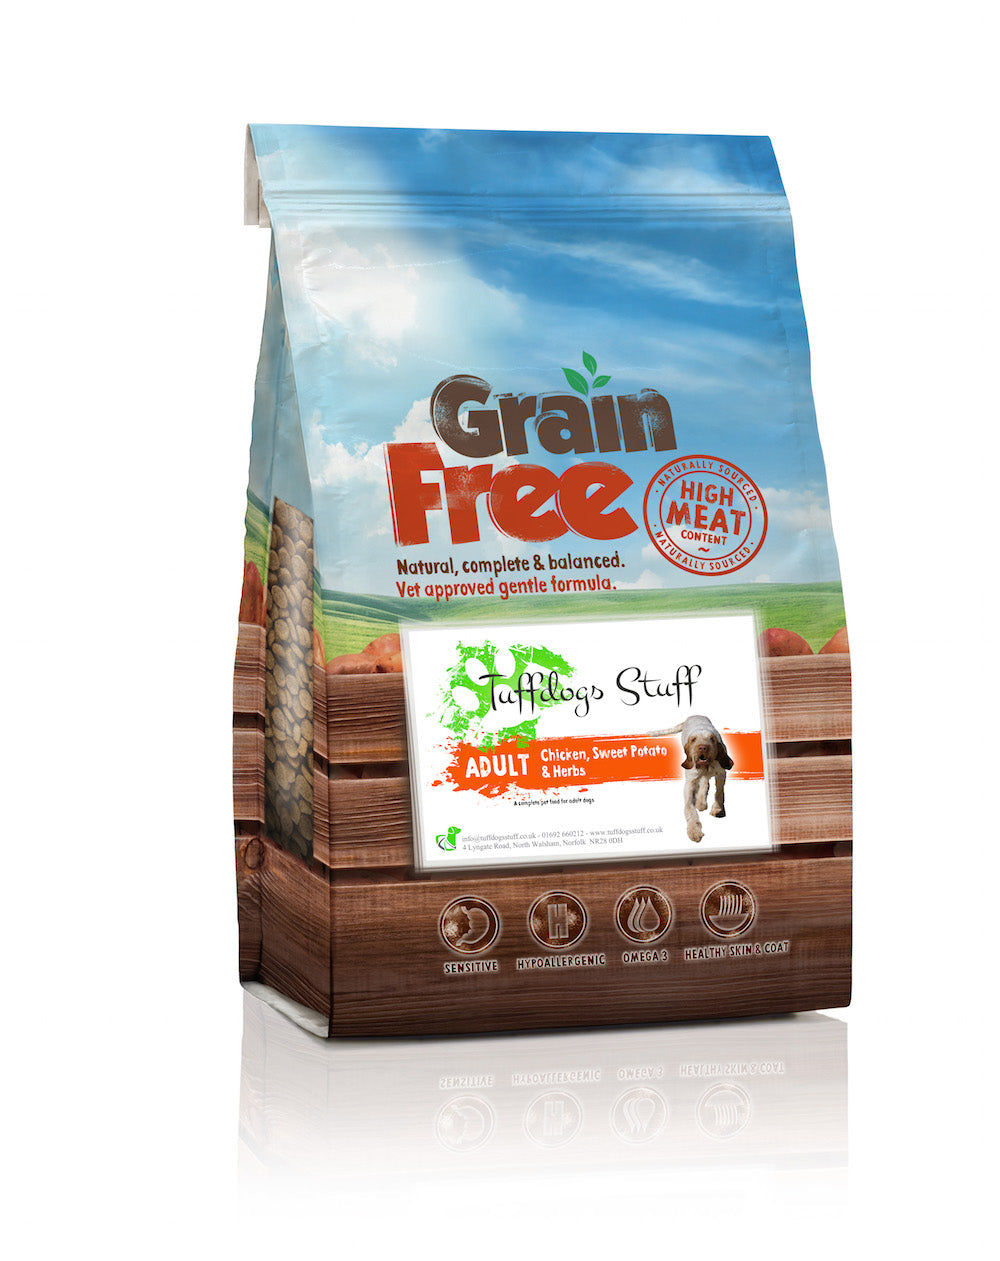 Grain Free Chicken, Sweet Potato & Herbs Adult Dog Food - Free Delivery!